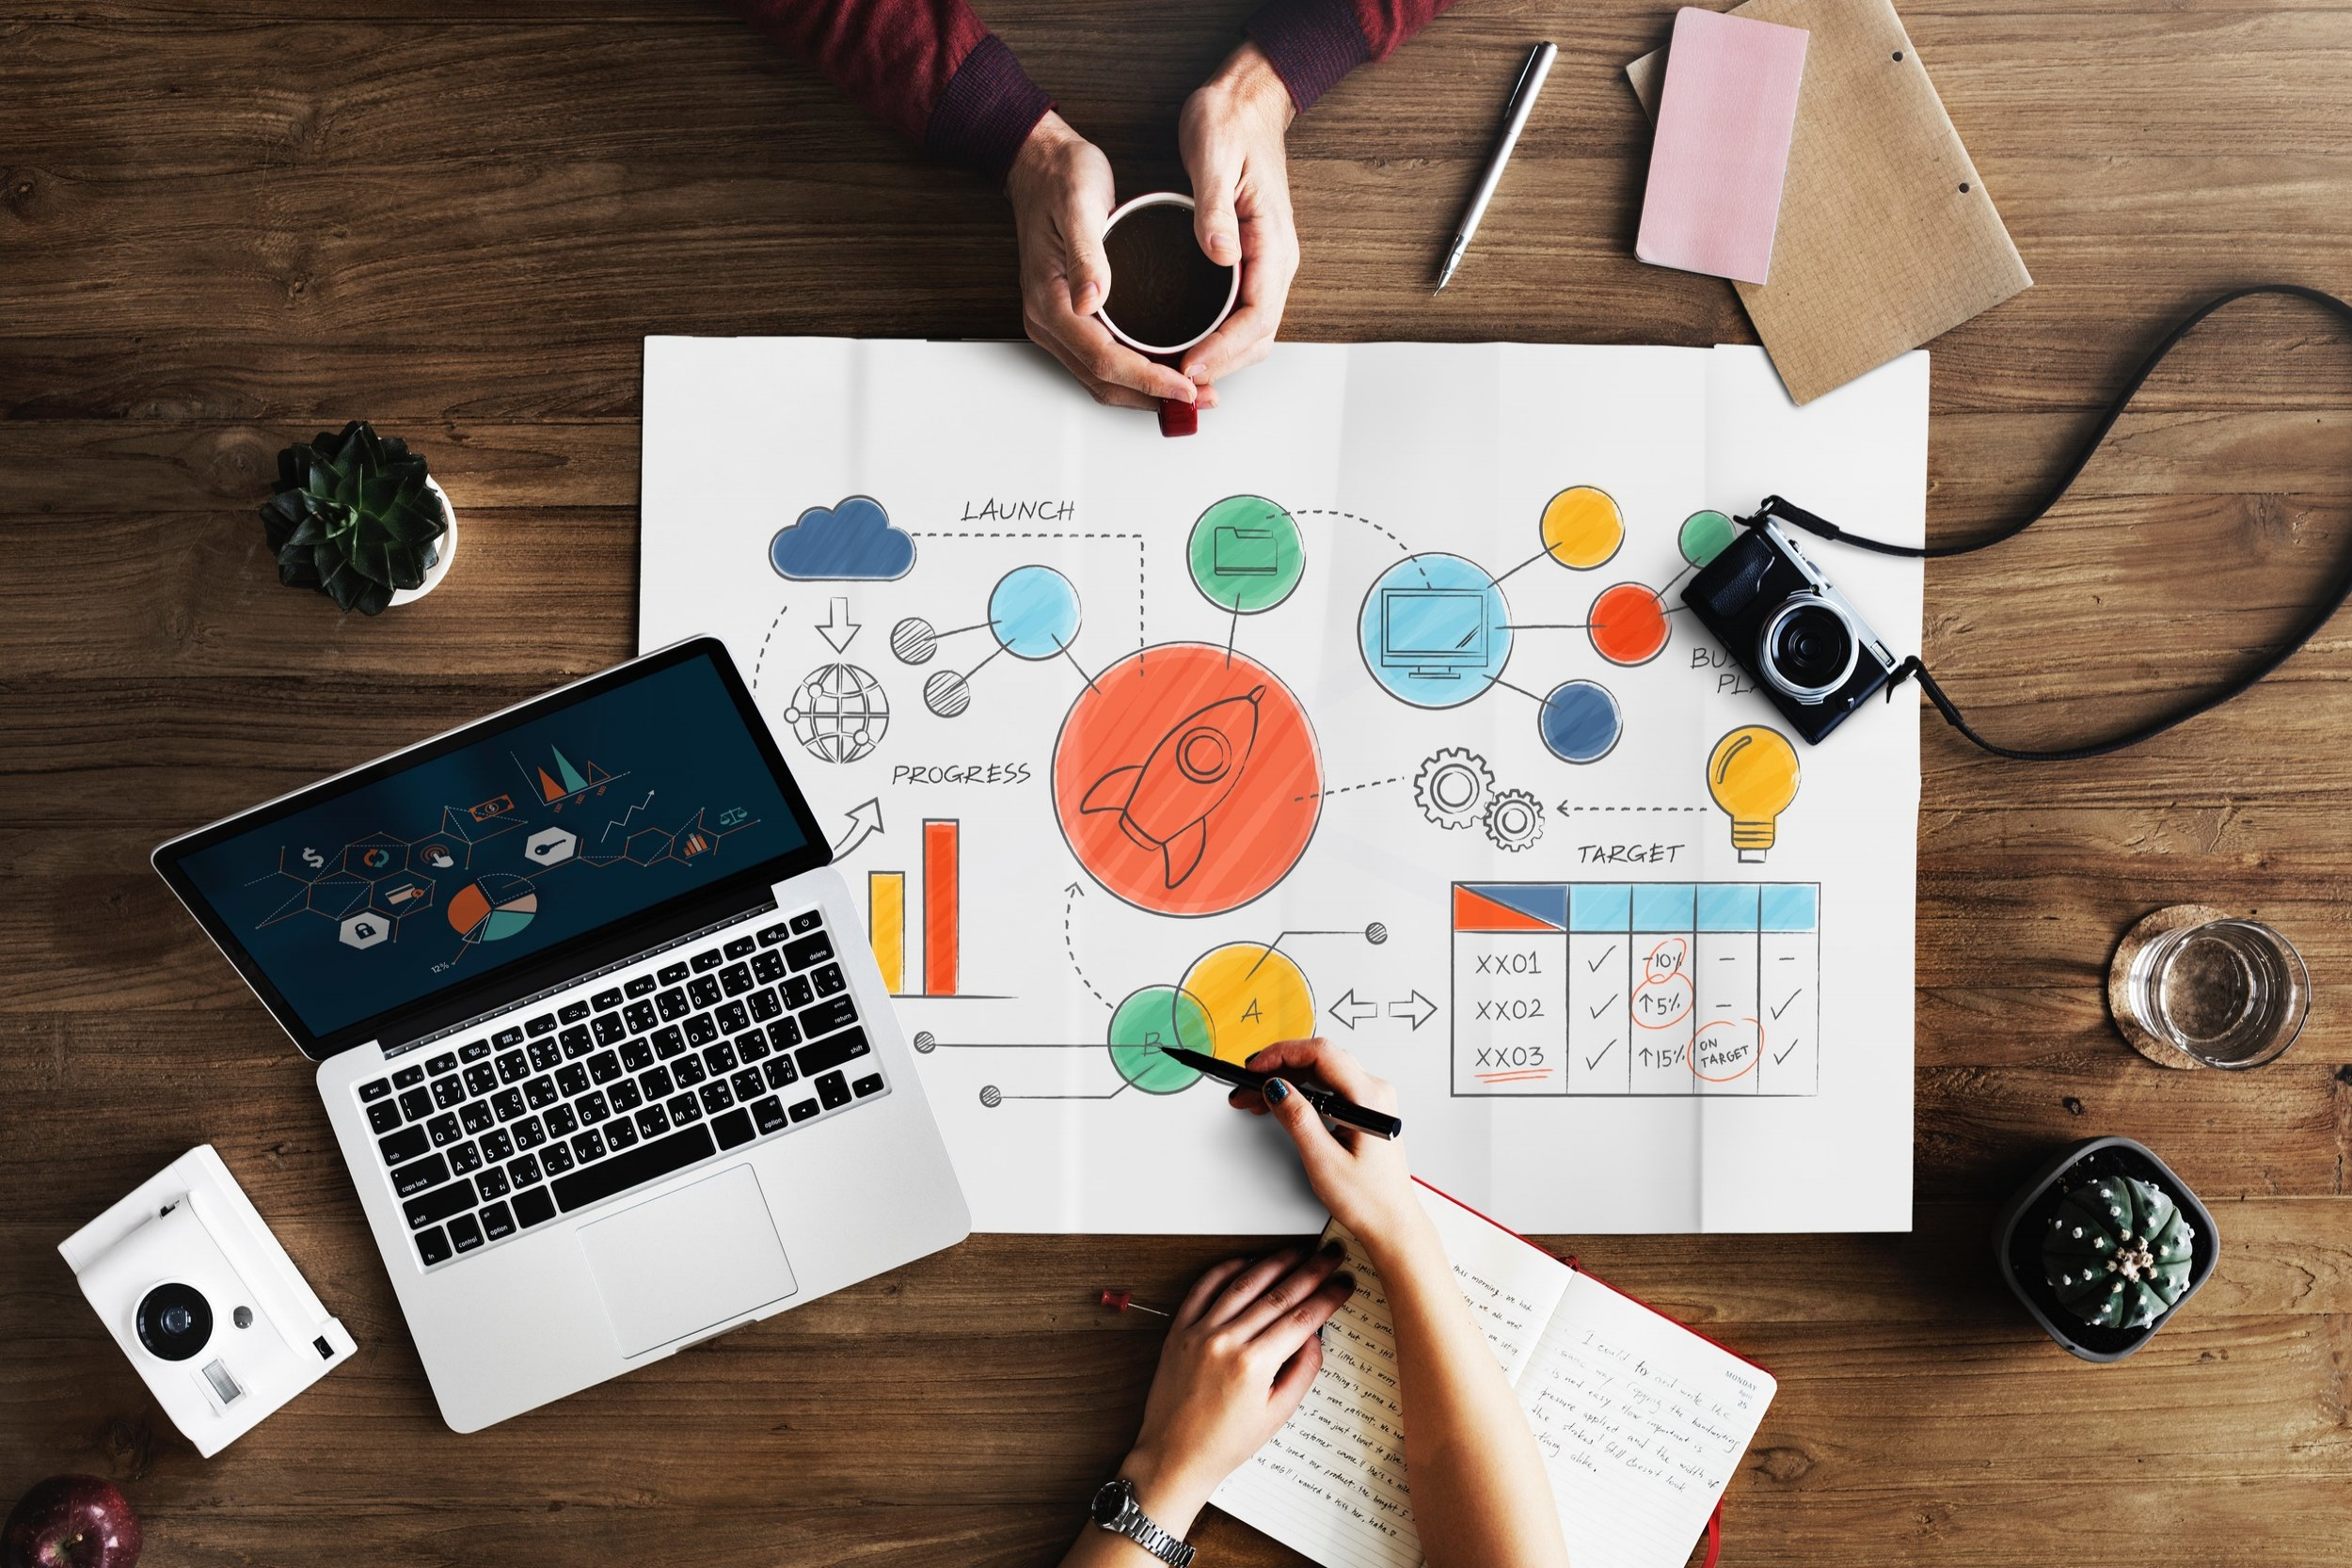 Corporate Businesses will find that MindScape can... - 1. Enhance workplace efficiency and creativity2. Stimulate critical thinking and problem solving3. Strengthen presentation skills with visualisation4. Tools for better conflict resolution